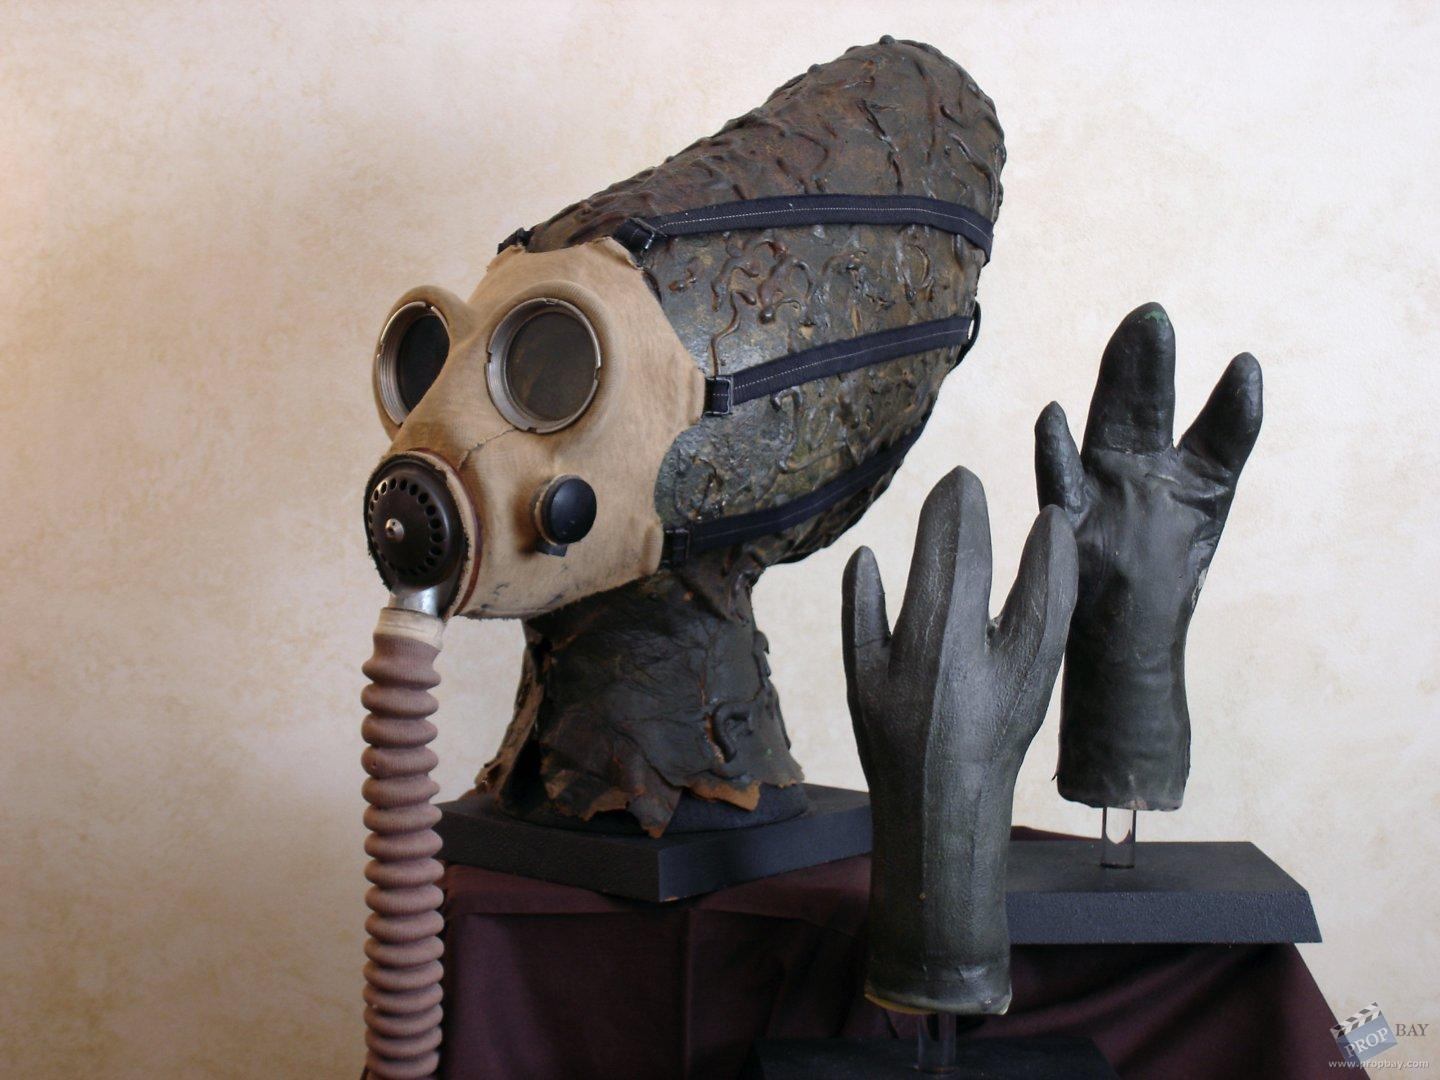 nabrun leids cantina alien mask and hands movie prop from